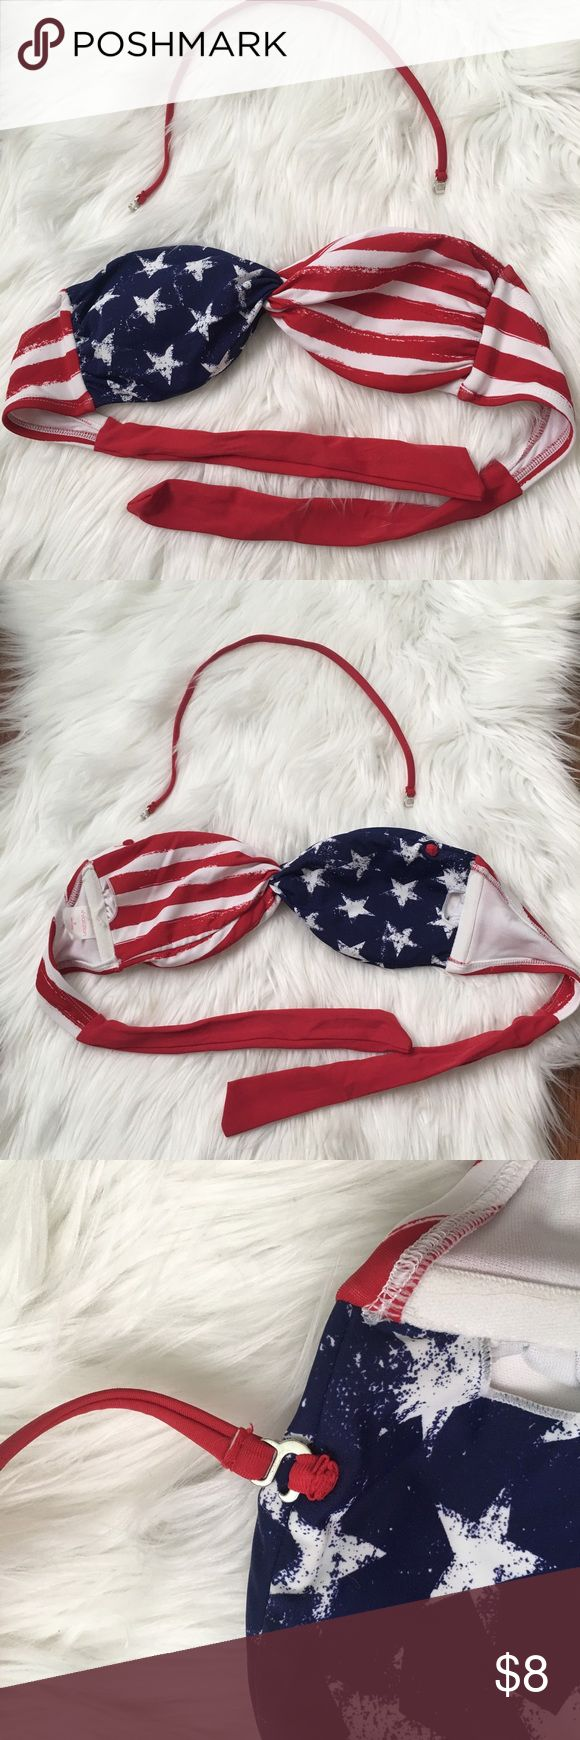 Patriotic bikini top size M This American flag bikini top has never been worn or washed! Like new. Got last year for 4th of July but never wore it. Just been sitting in my dresser since, needs a great new home. Has attachable halter strap and removable padding. Ties in the back so you can adjust tightness to your personal liking/size. 😊❤️🇺🇸 Xhilaration Swim Bikinis